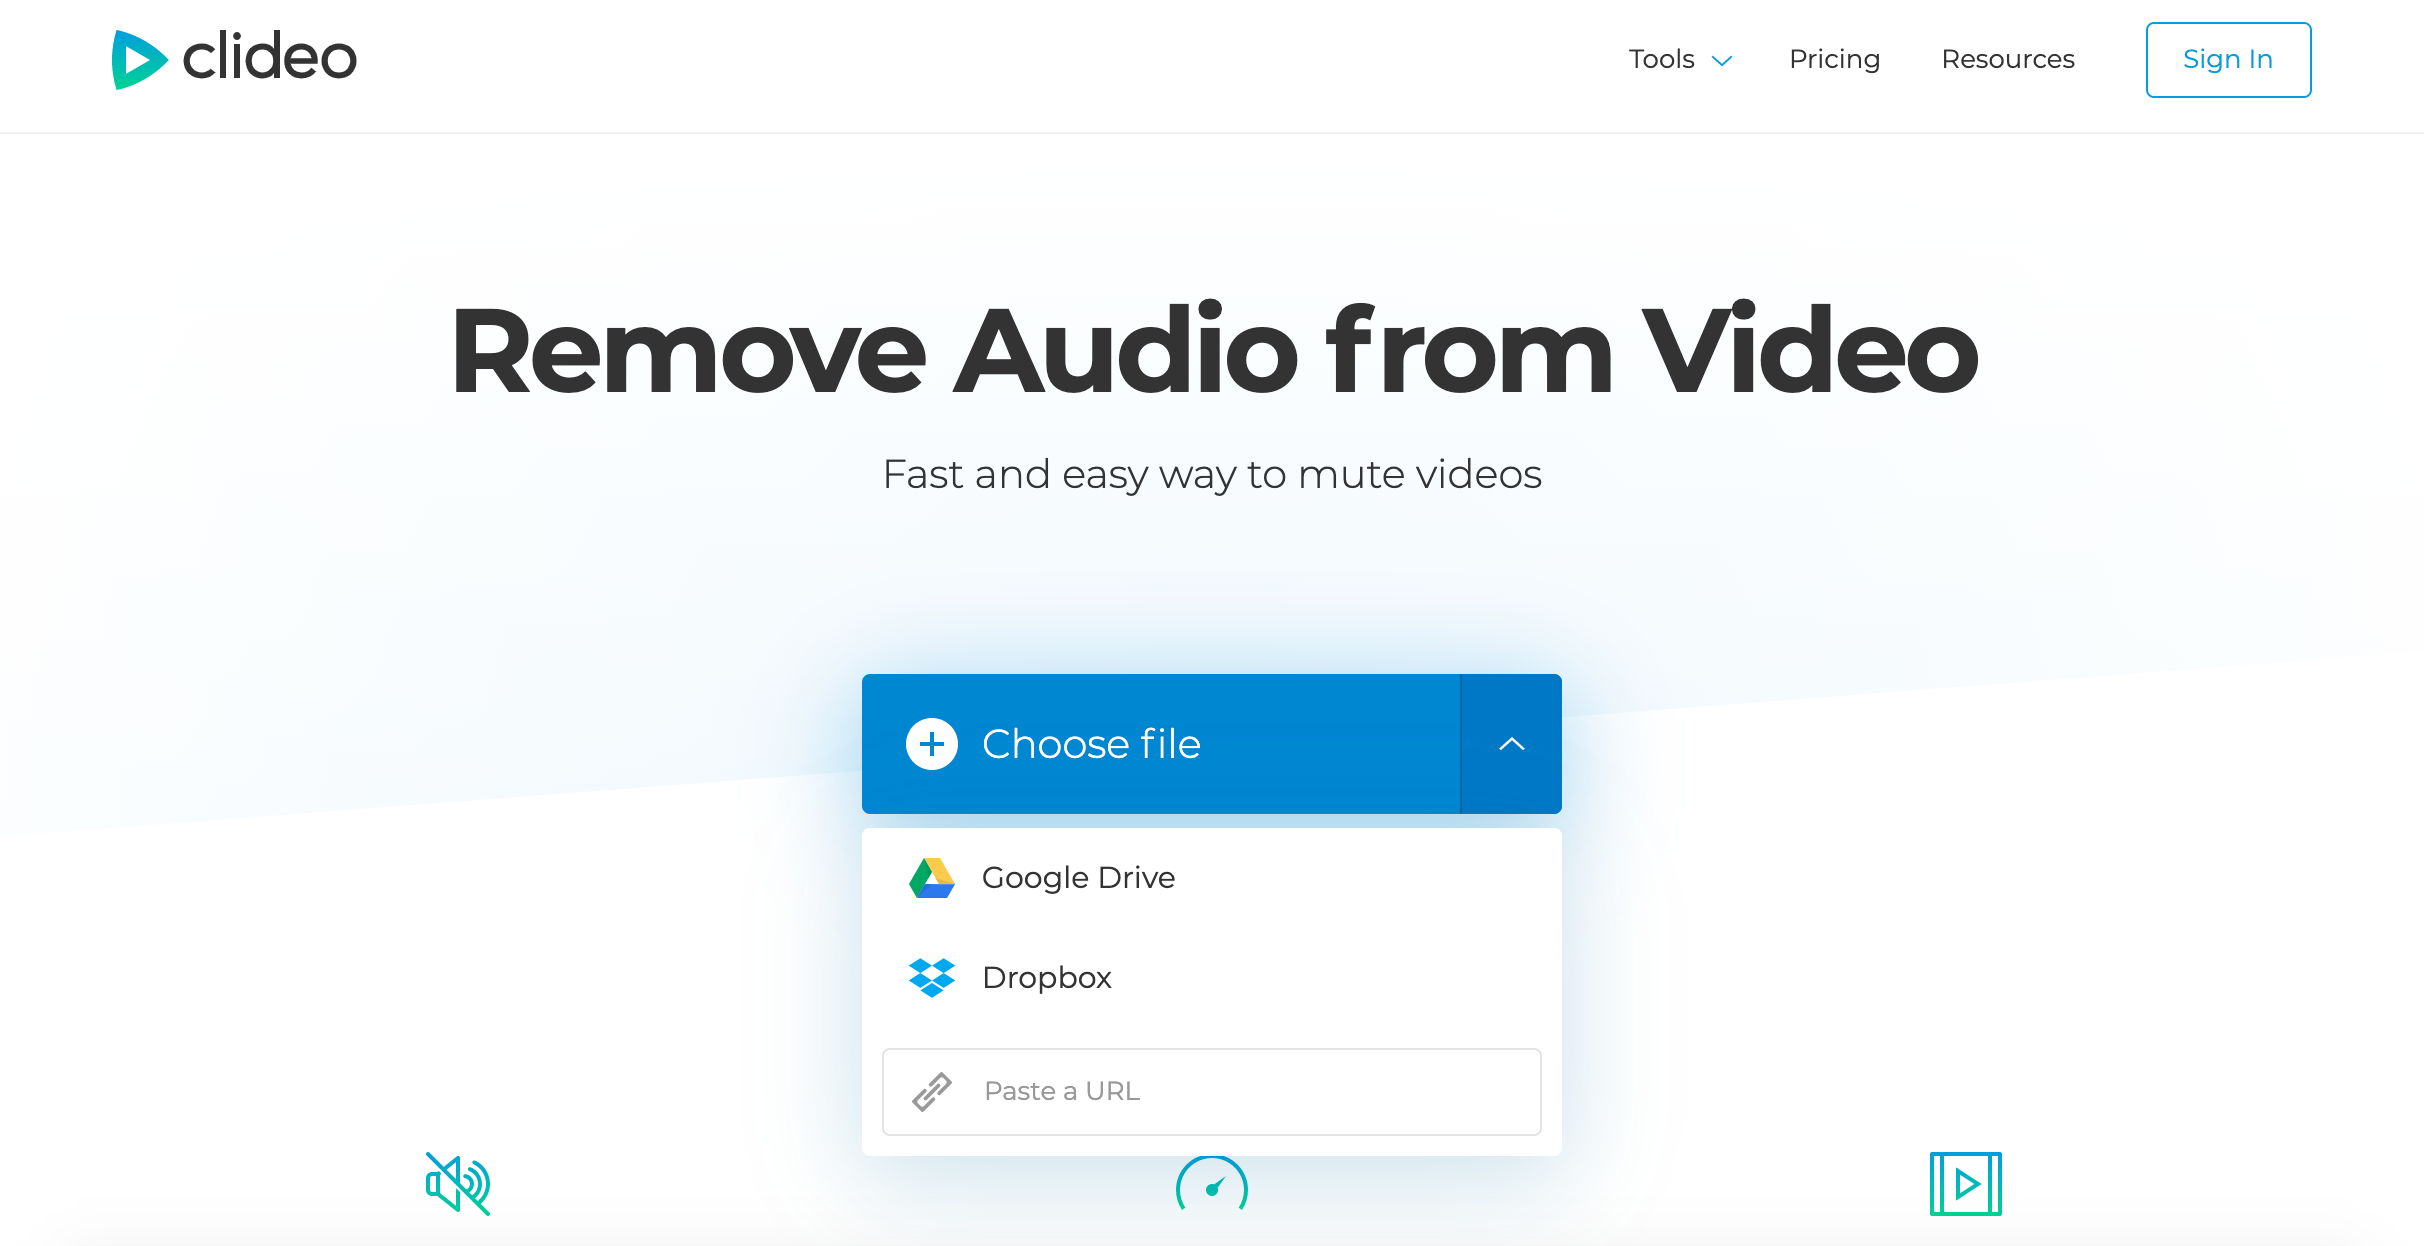 Upload a video and remove sound from it automatically